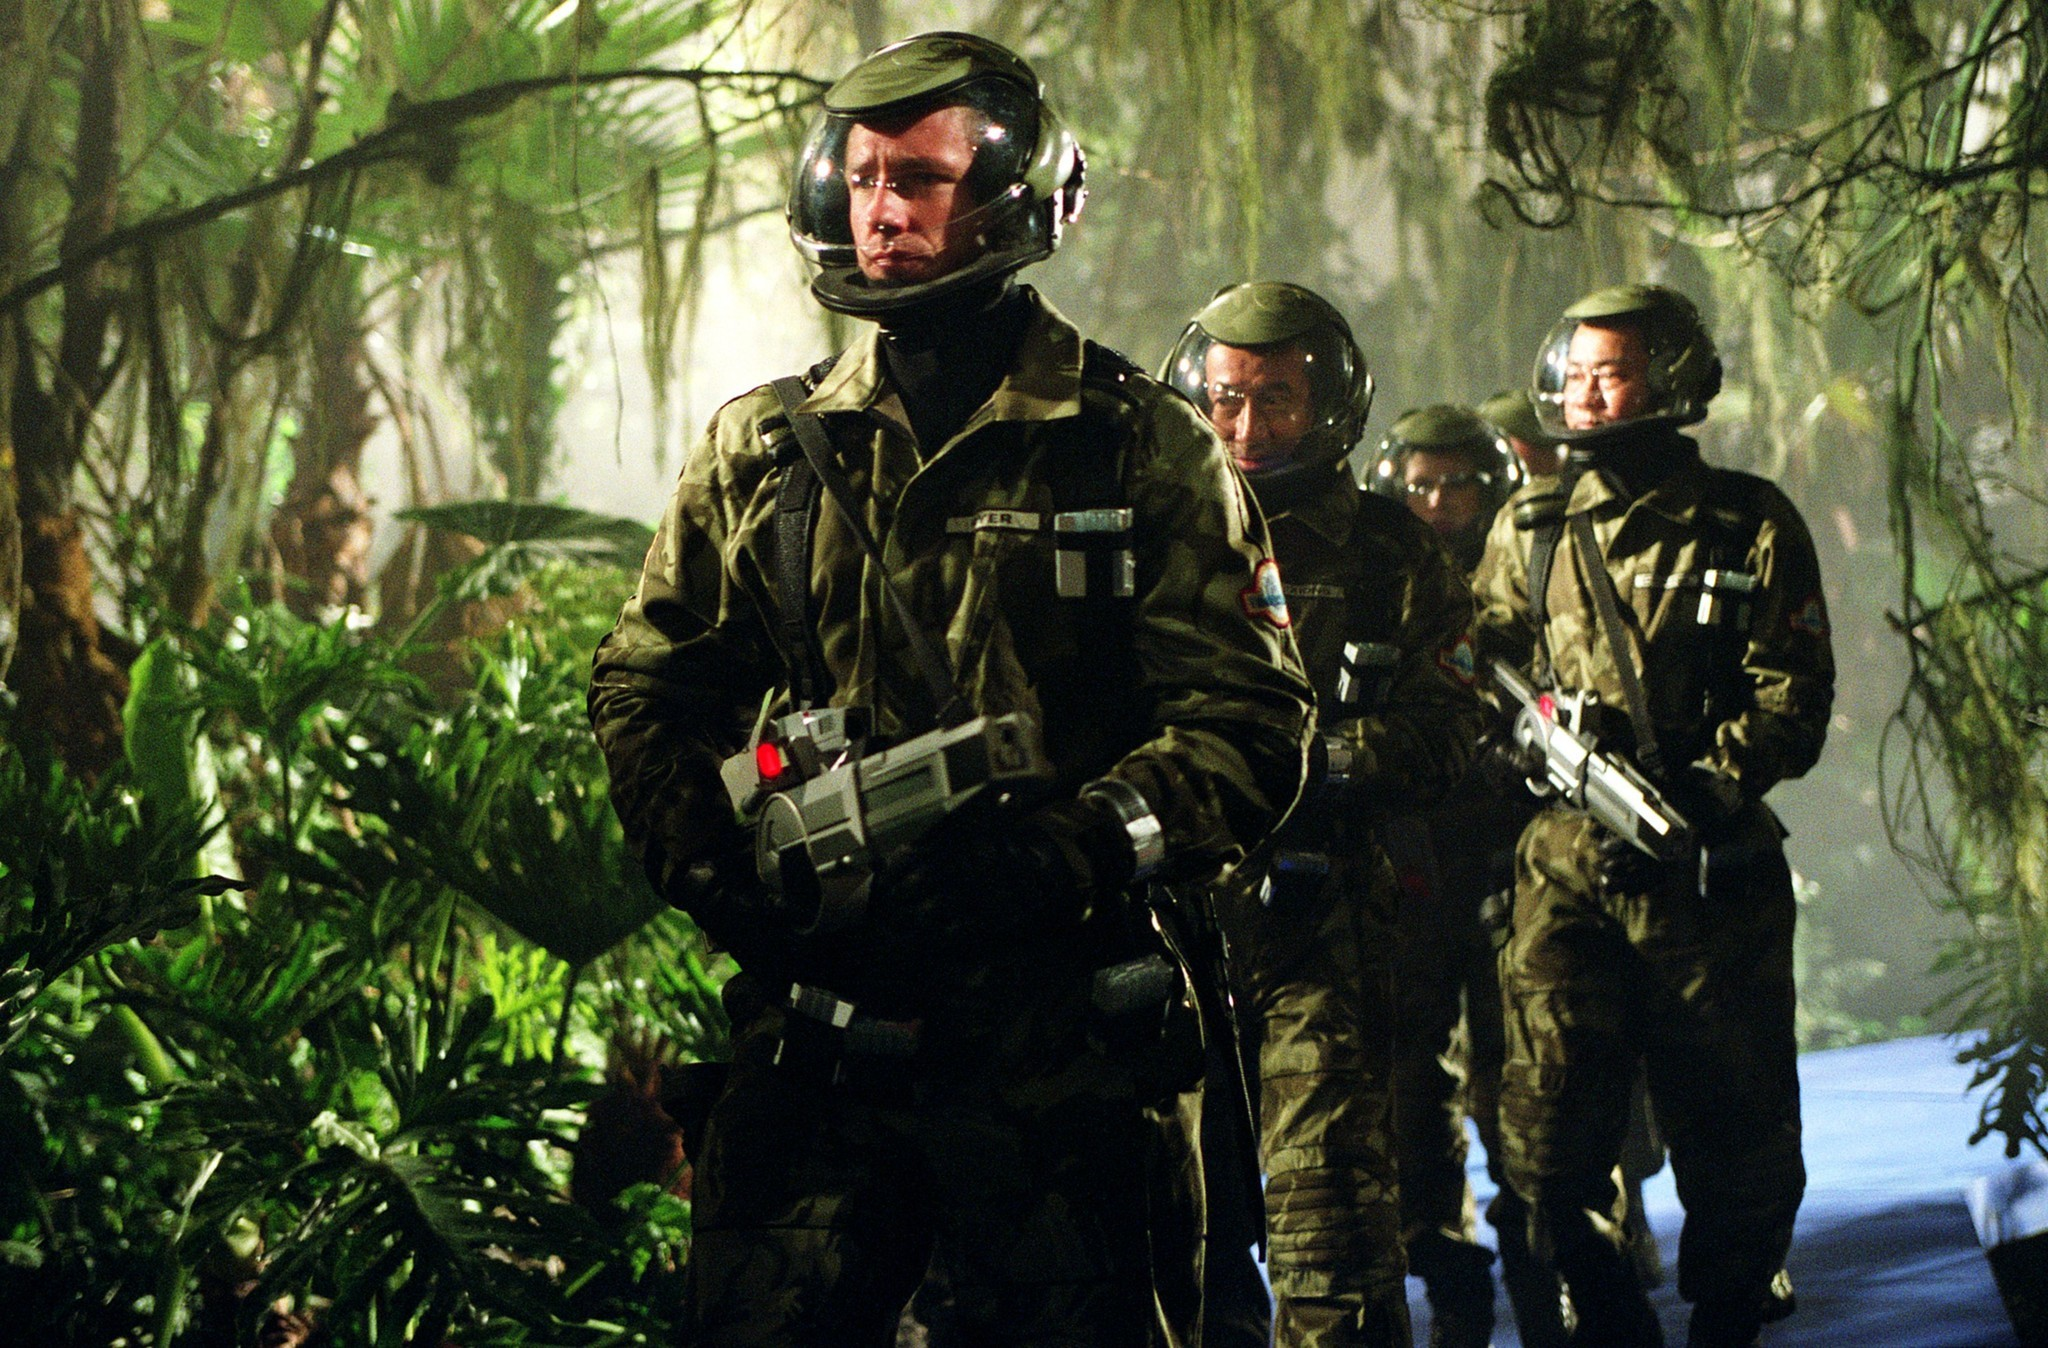 Edward Burns leads an expedition back in time to hunt dinosaurs in A Sound of Thunder (2005)